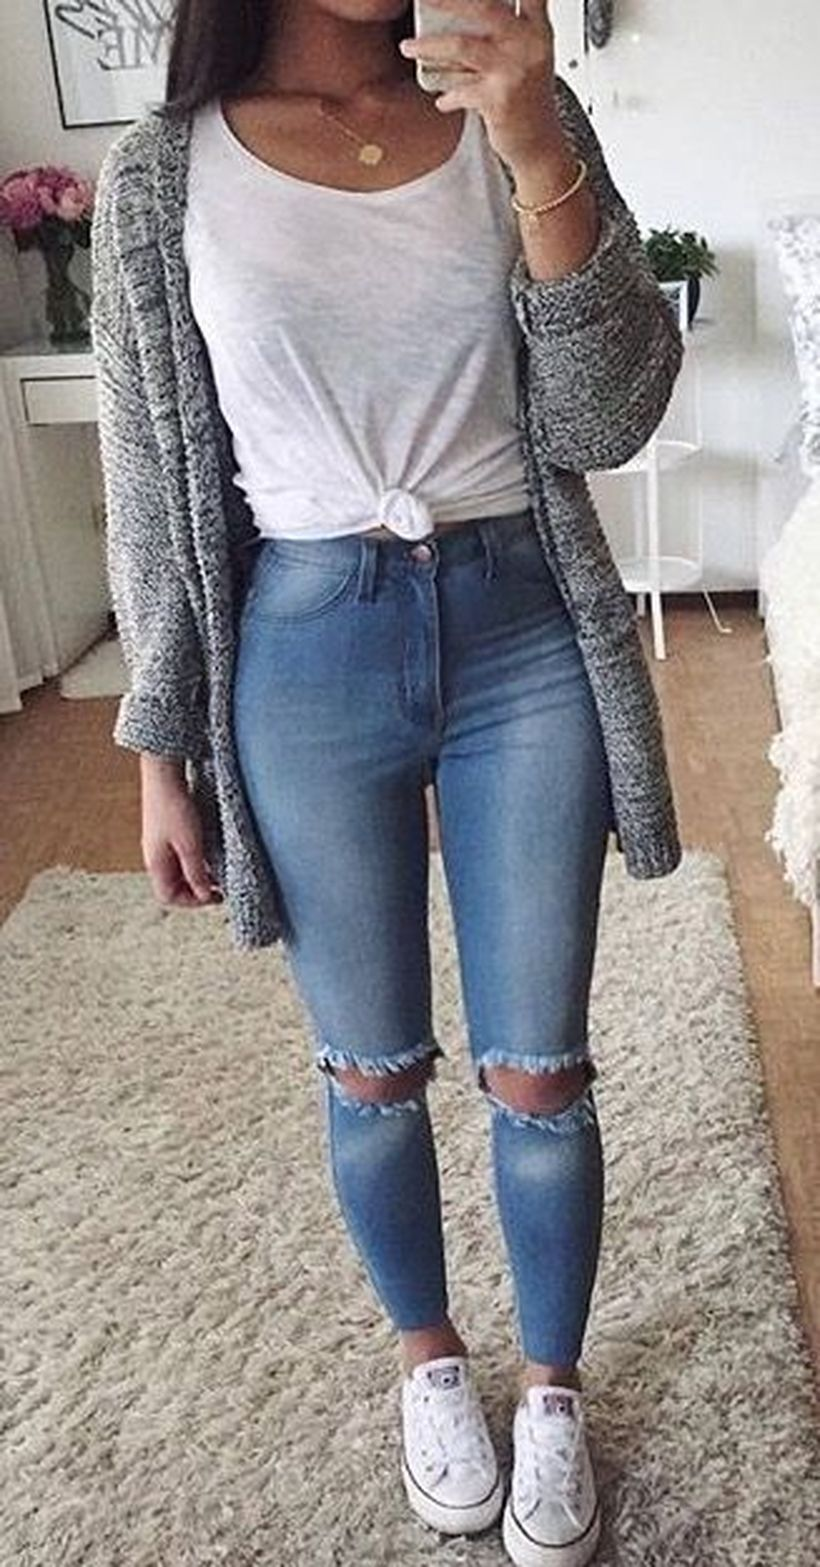 61 Most Cute School Fall Outfits For Teen Girls Trending Right Now #falloutfitsforteengirls